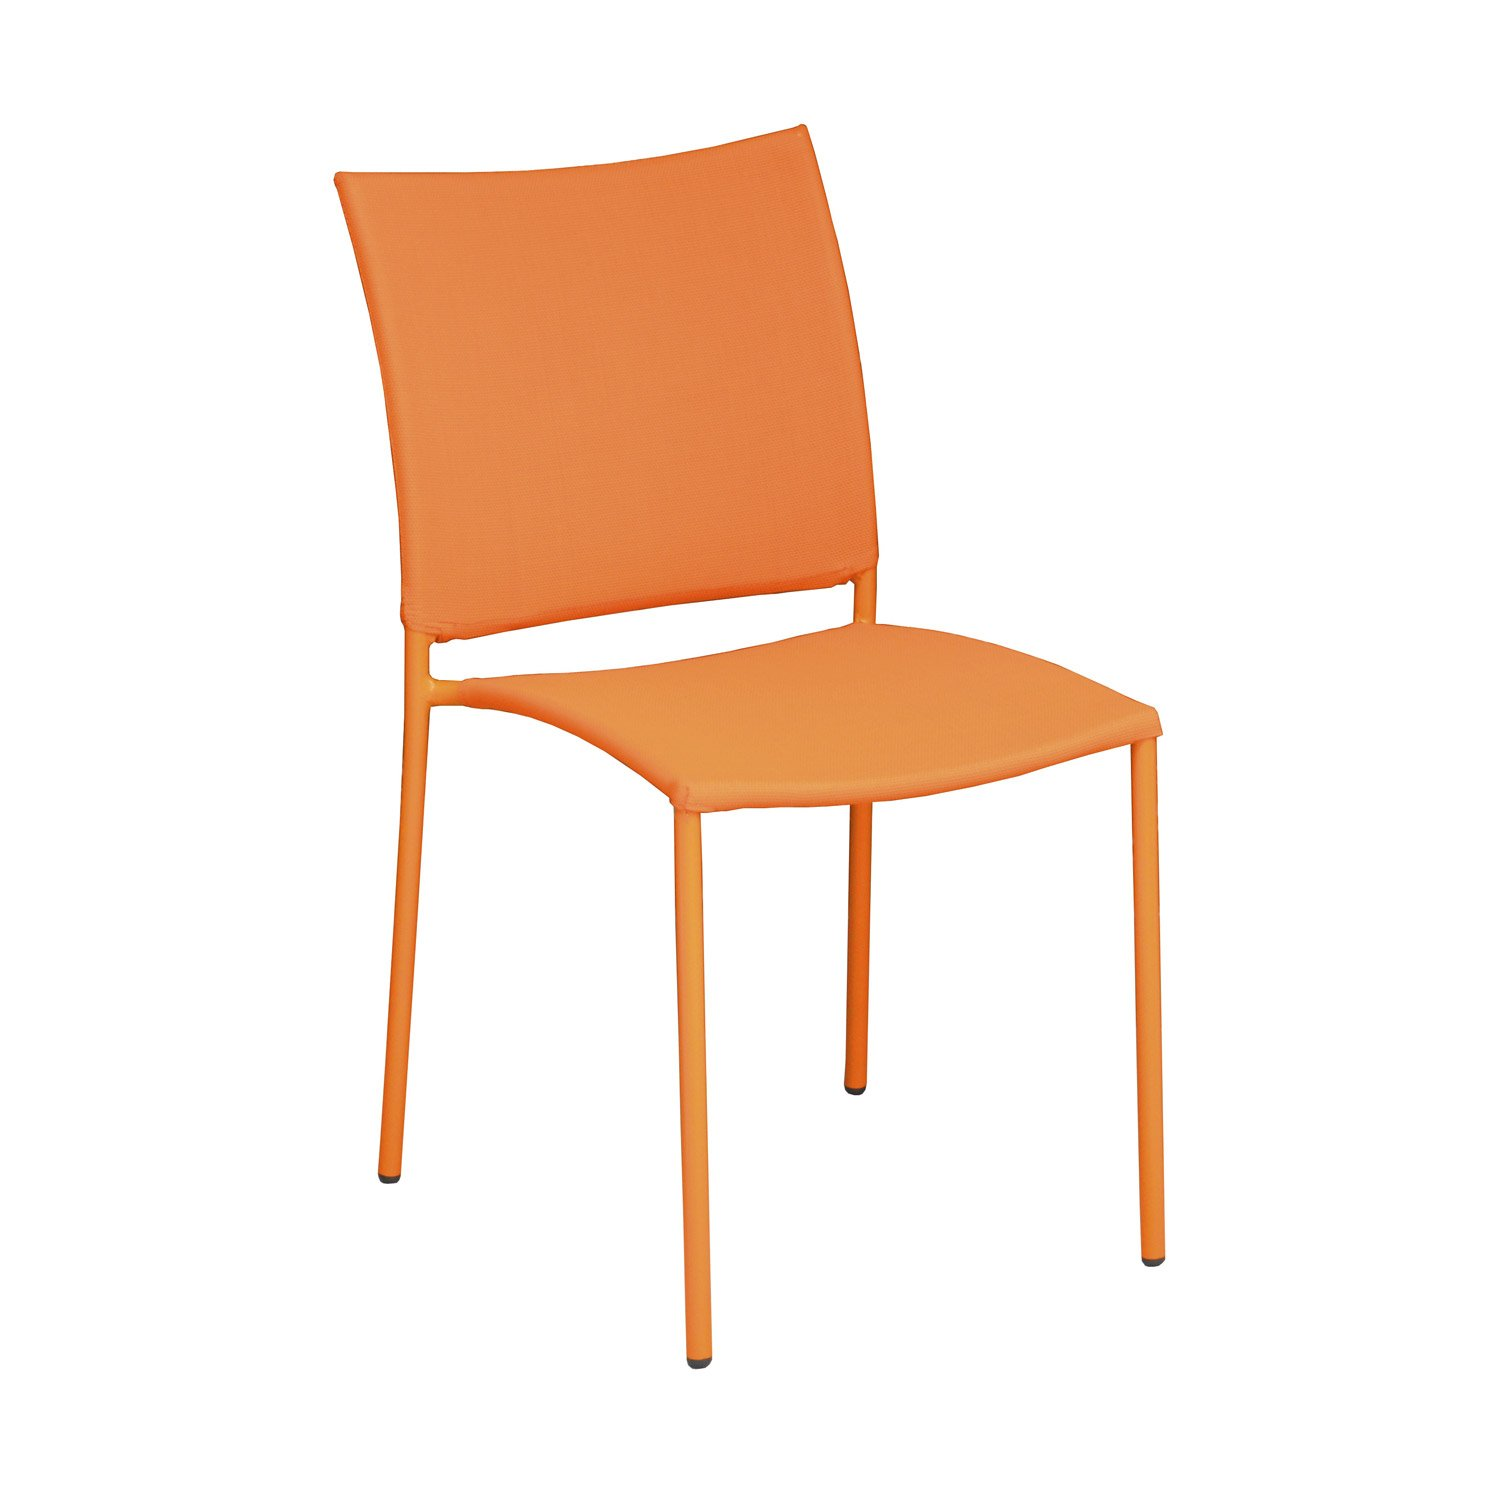 Chaise de jardin en acier globe orange leroy merlin for Chaise jardin leroy merlin